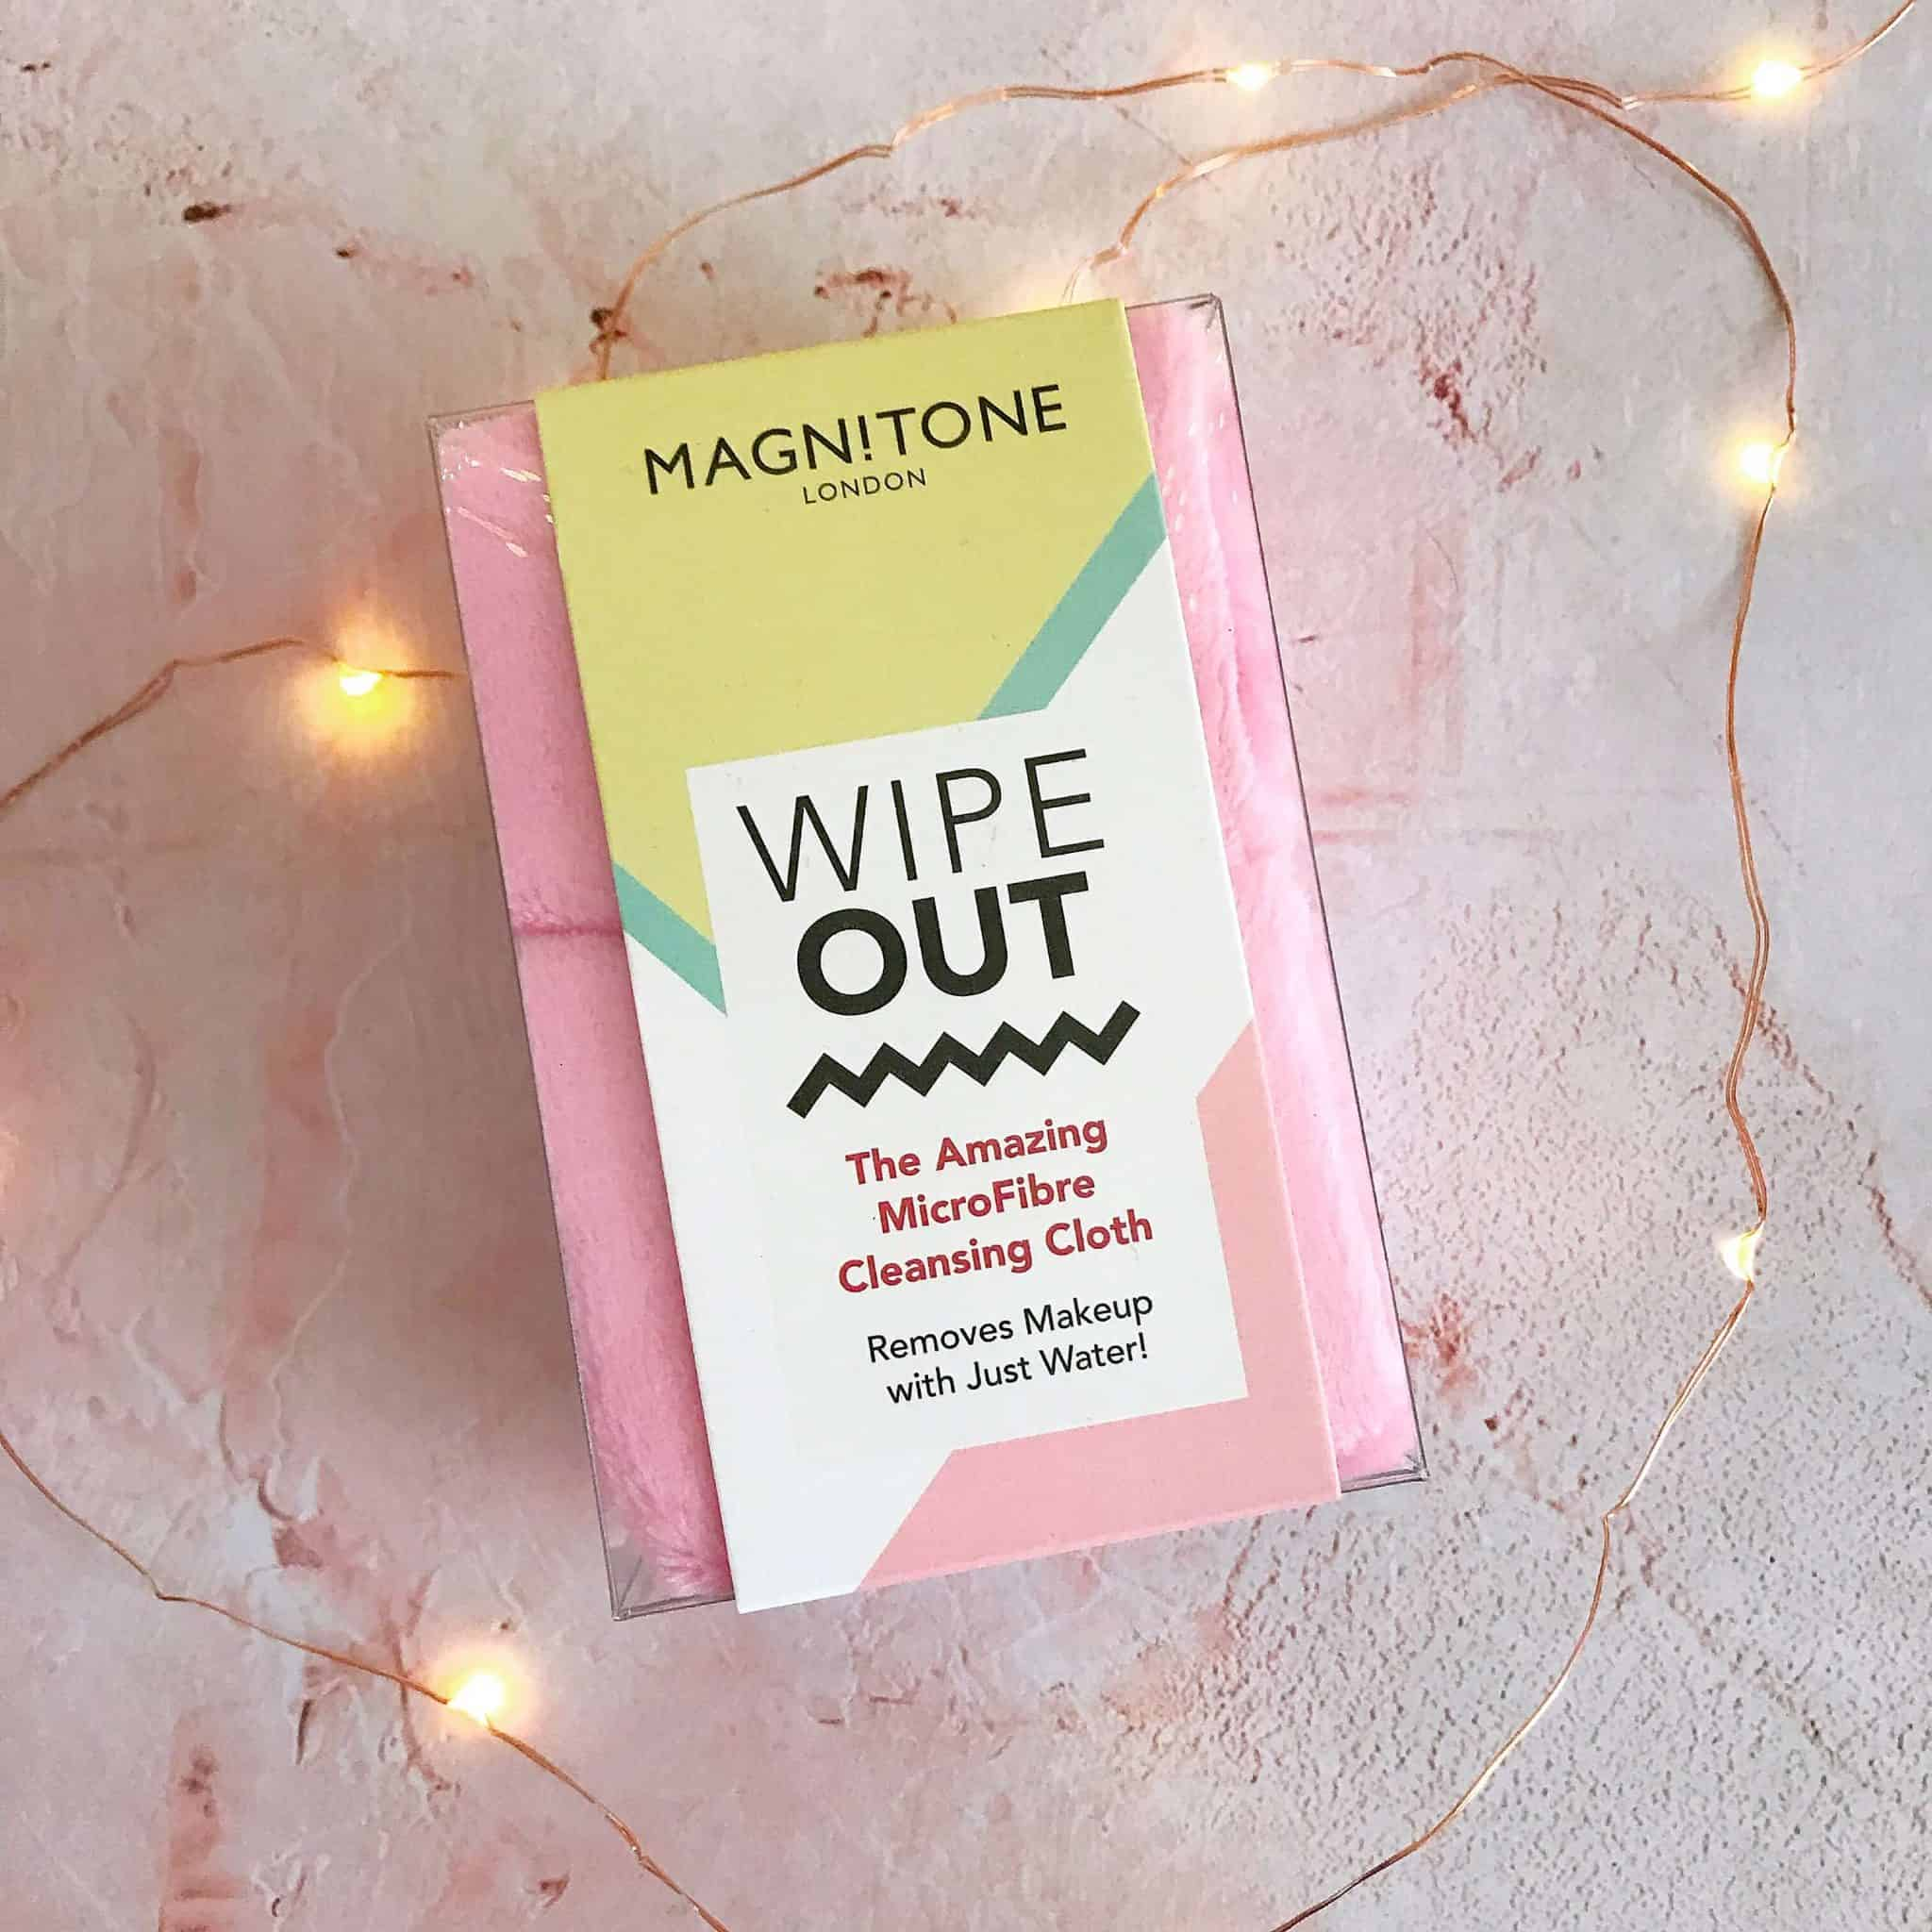 Magnitone Wipe Out MicroFibre Cleansing Cloth - a great ethical gift for her